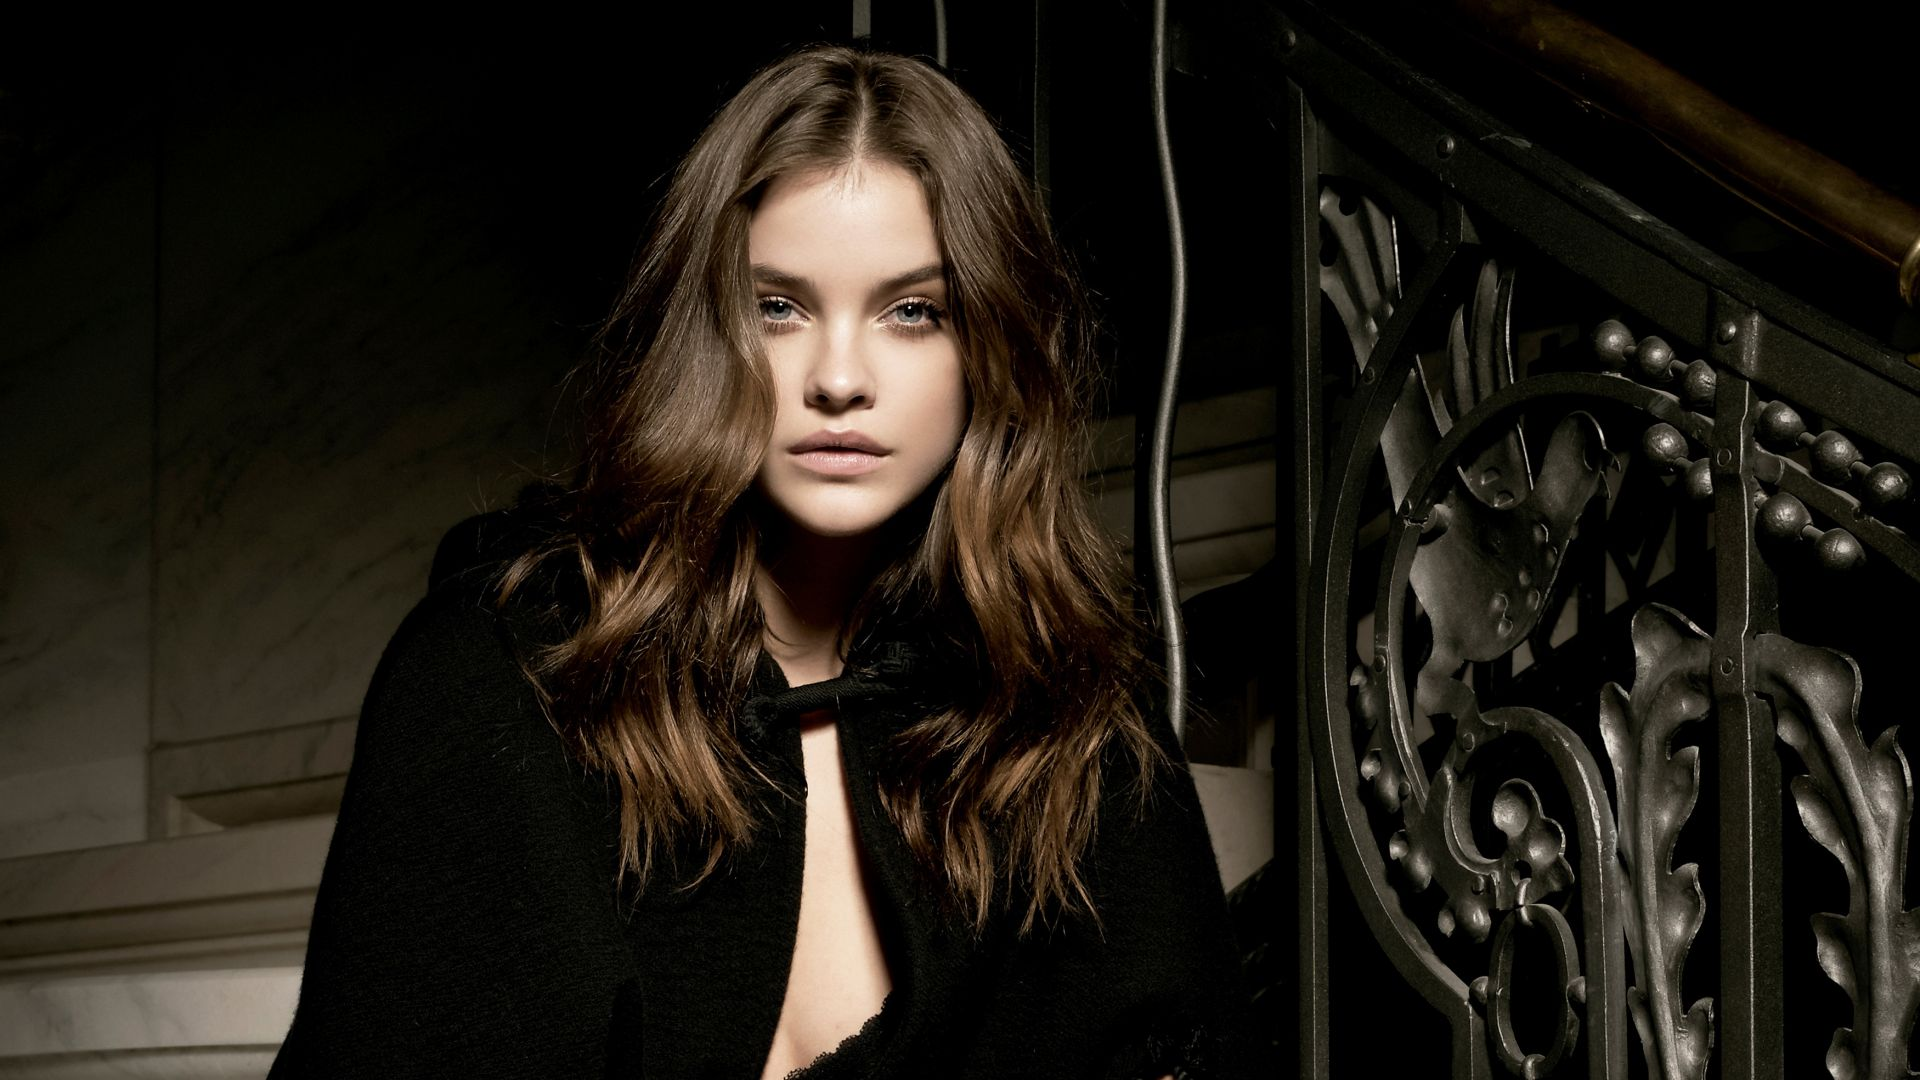 Barbara Palvin, Victoria's Secret Angel, model, fashion, portrait